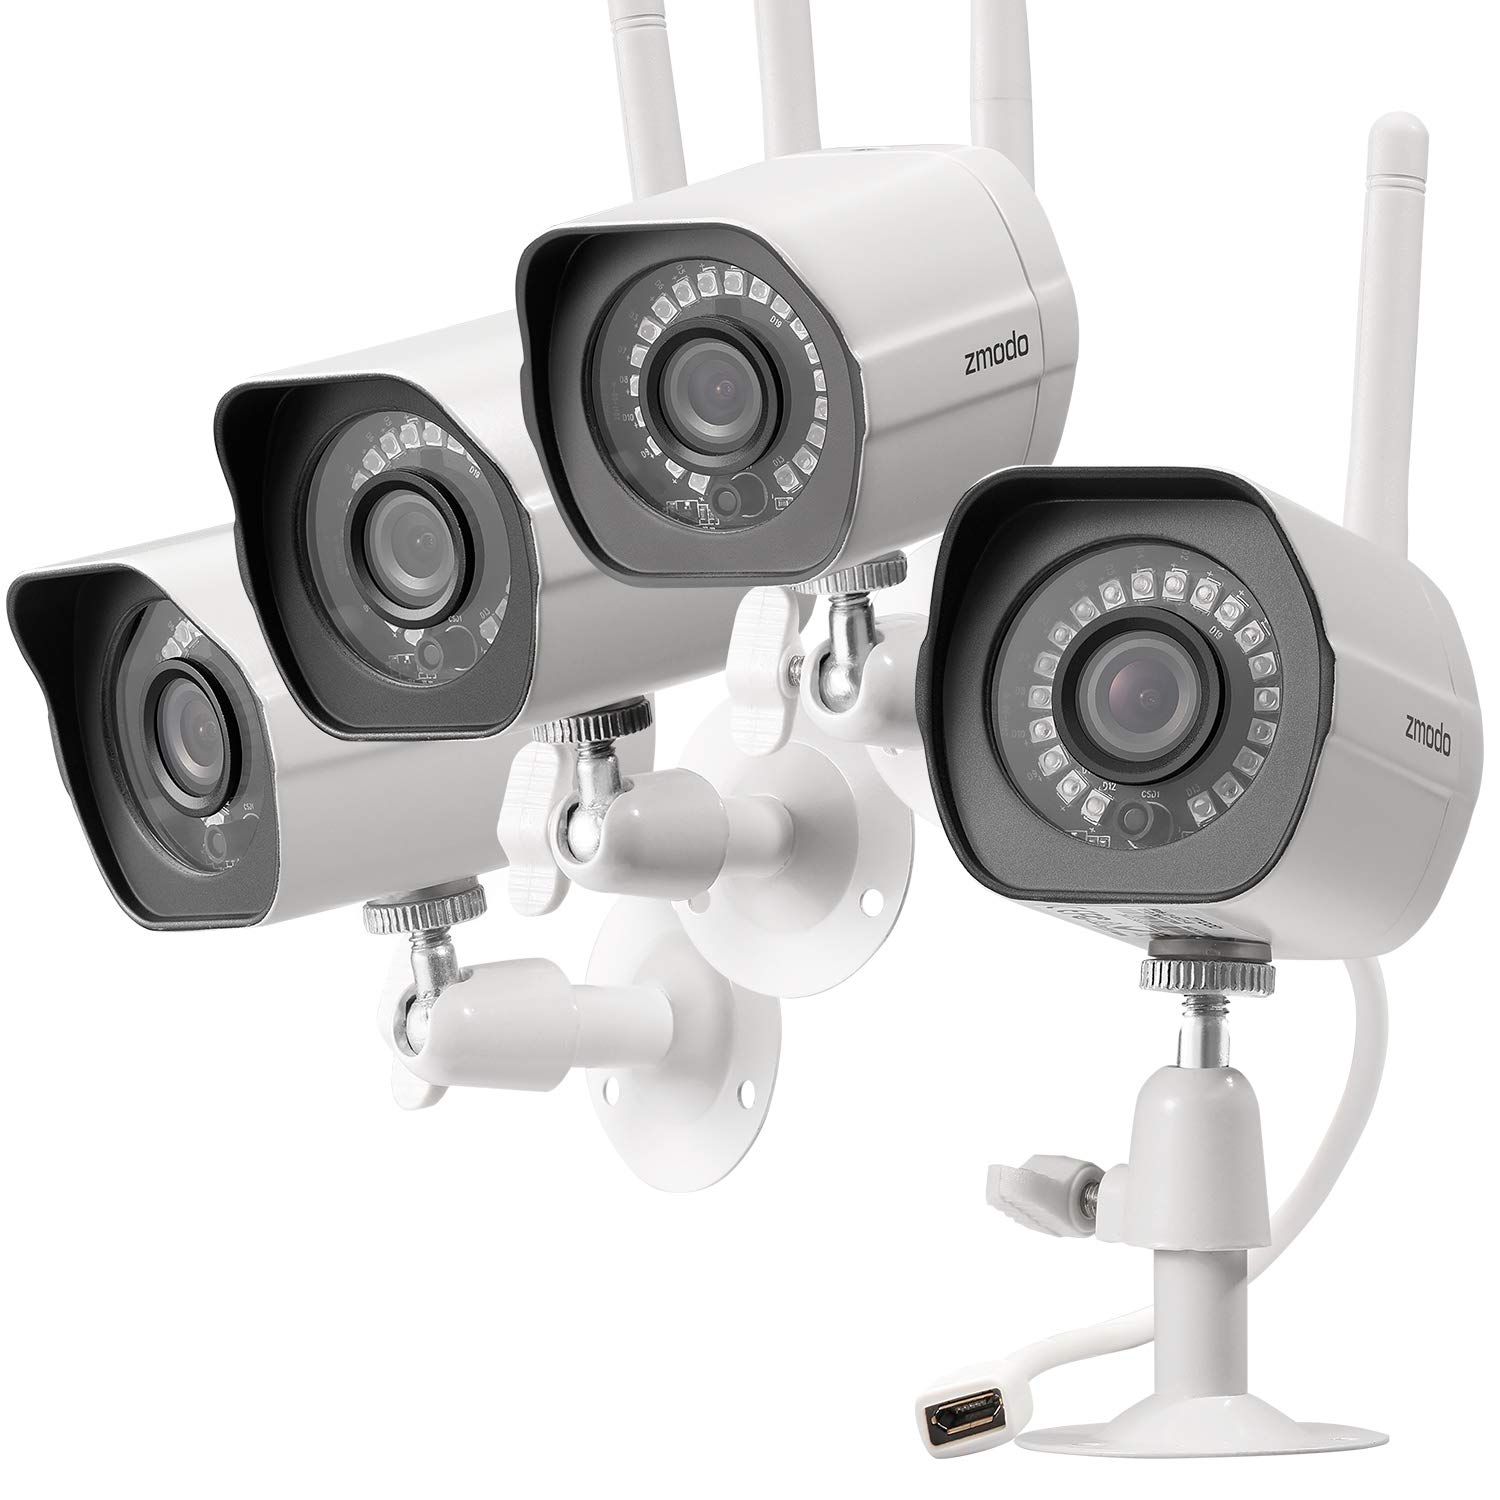 a place to call home complete series 4 camera advance pro series cctv installation cctv Amazon.com : Zmodo Wireless Security Camera System (4 Pack), Smart Home HD  Indoor Outdoor WiFi IP Cameras with Night Vision, 1-month Free Cloud  Recording ...